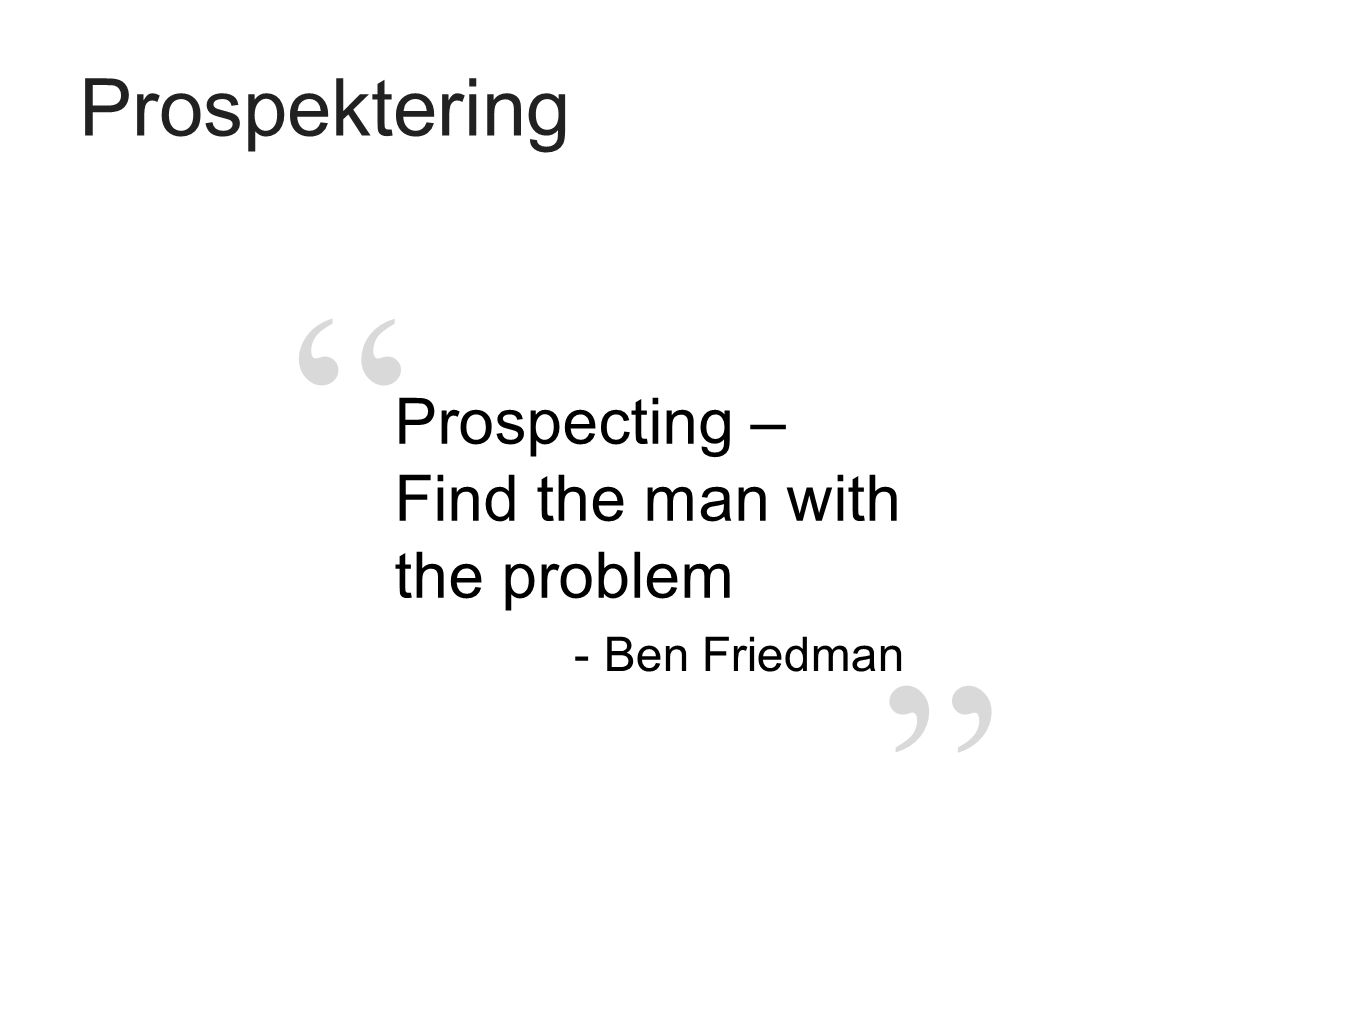 Prospektering Prospecting – Find the man with the problem